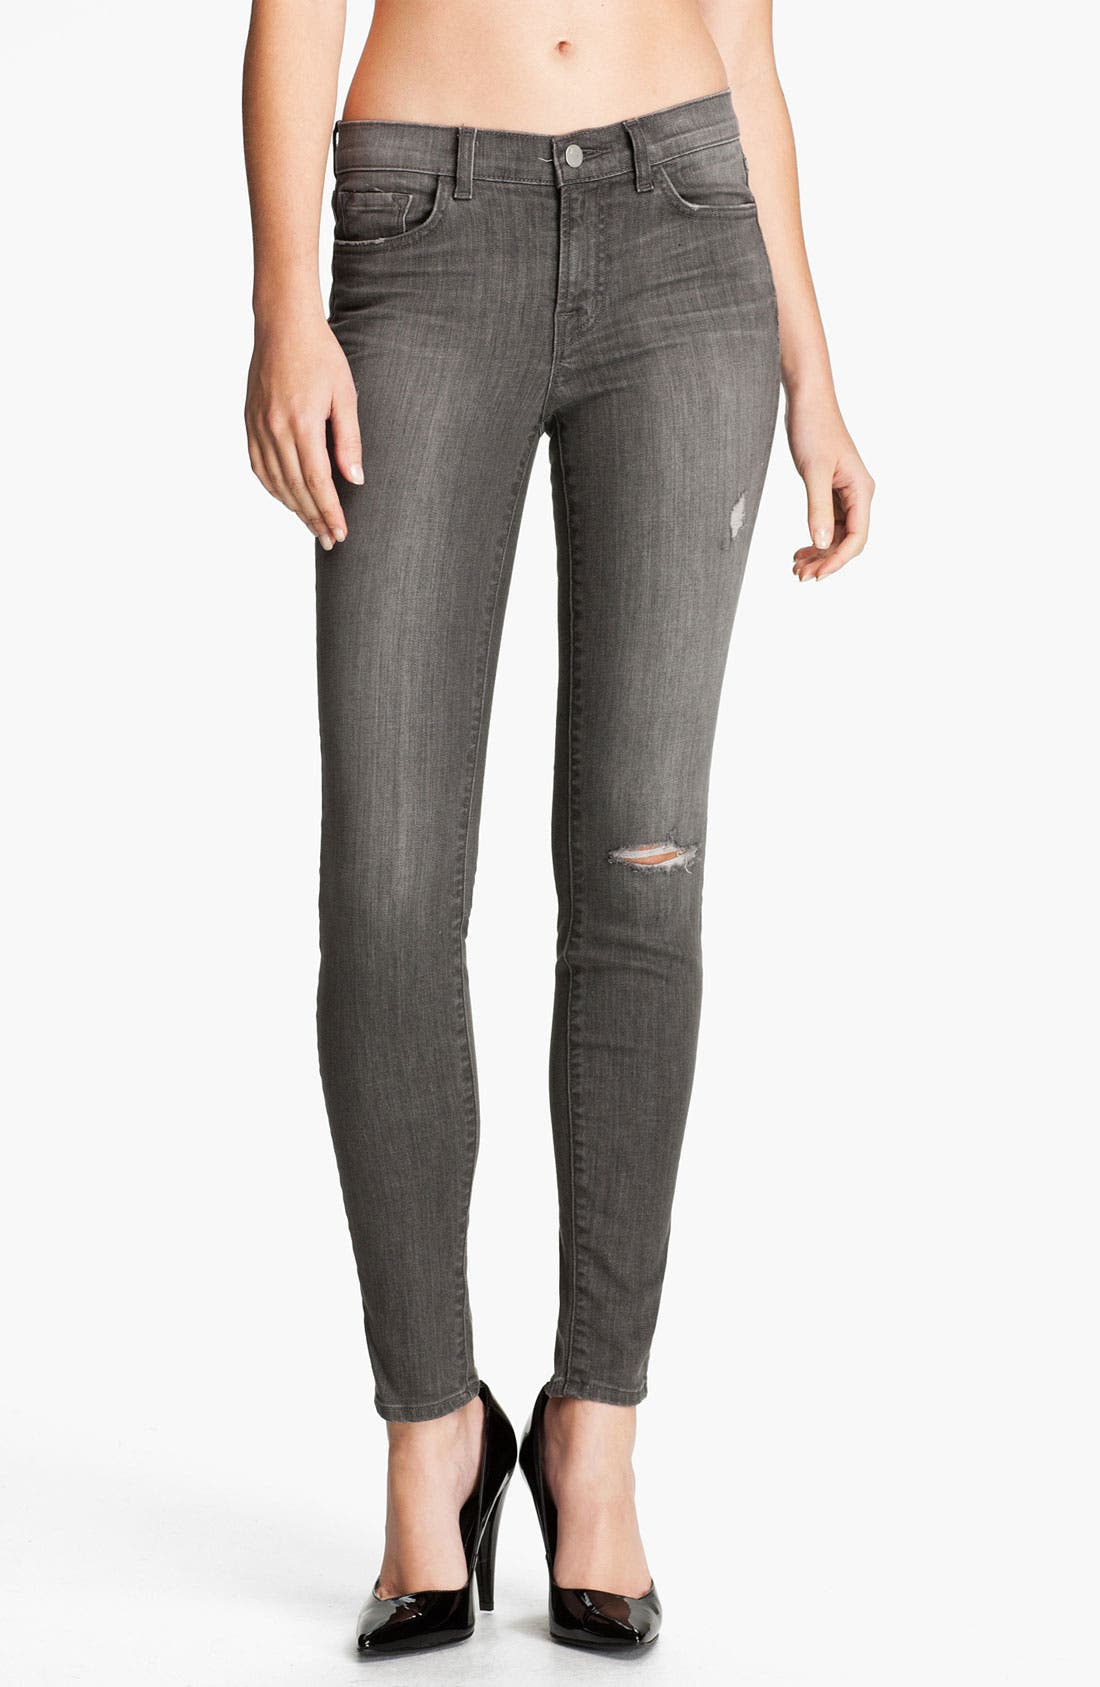 Alternate Image 1 Selected - J Brand Skinny Stretch Ankle Jeans